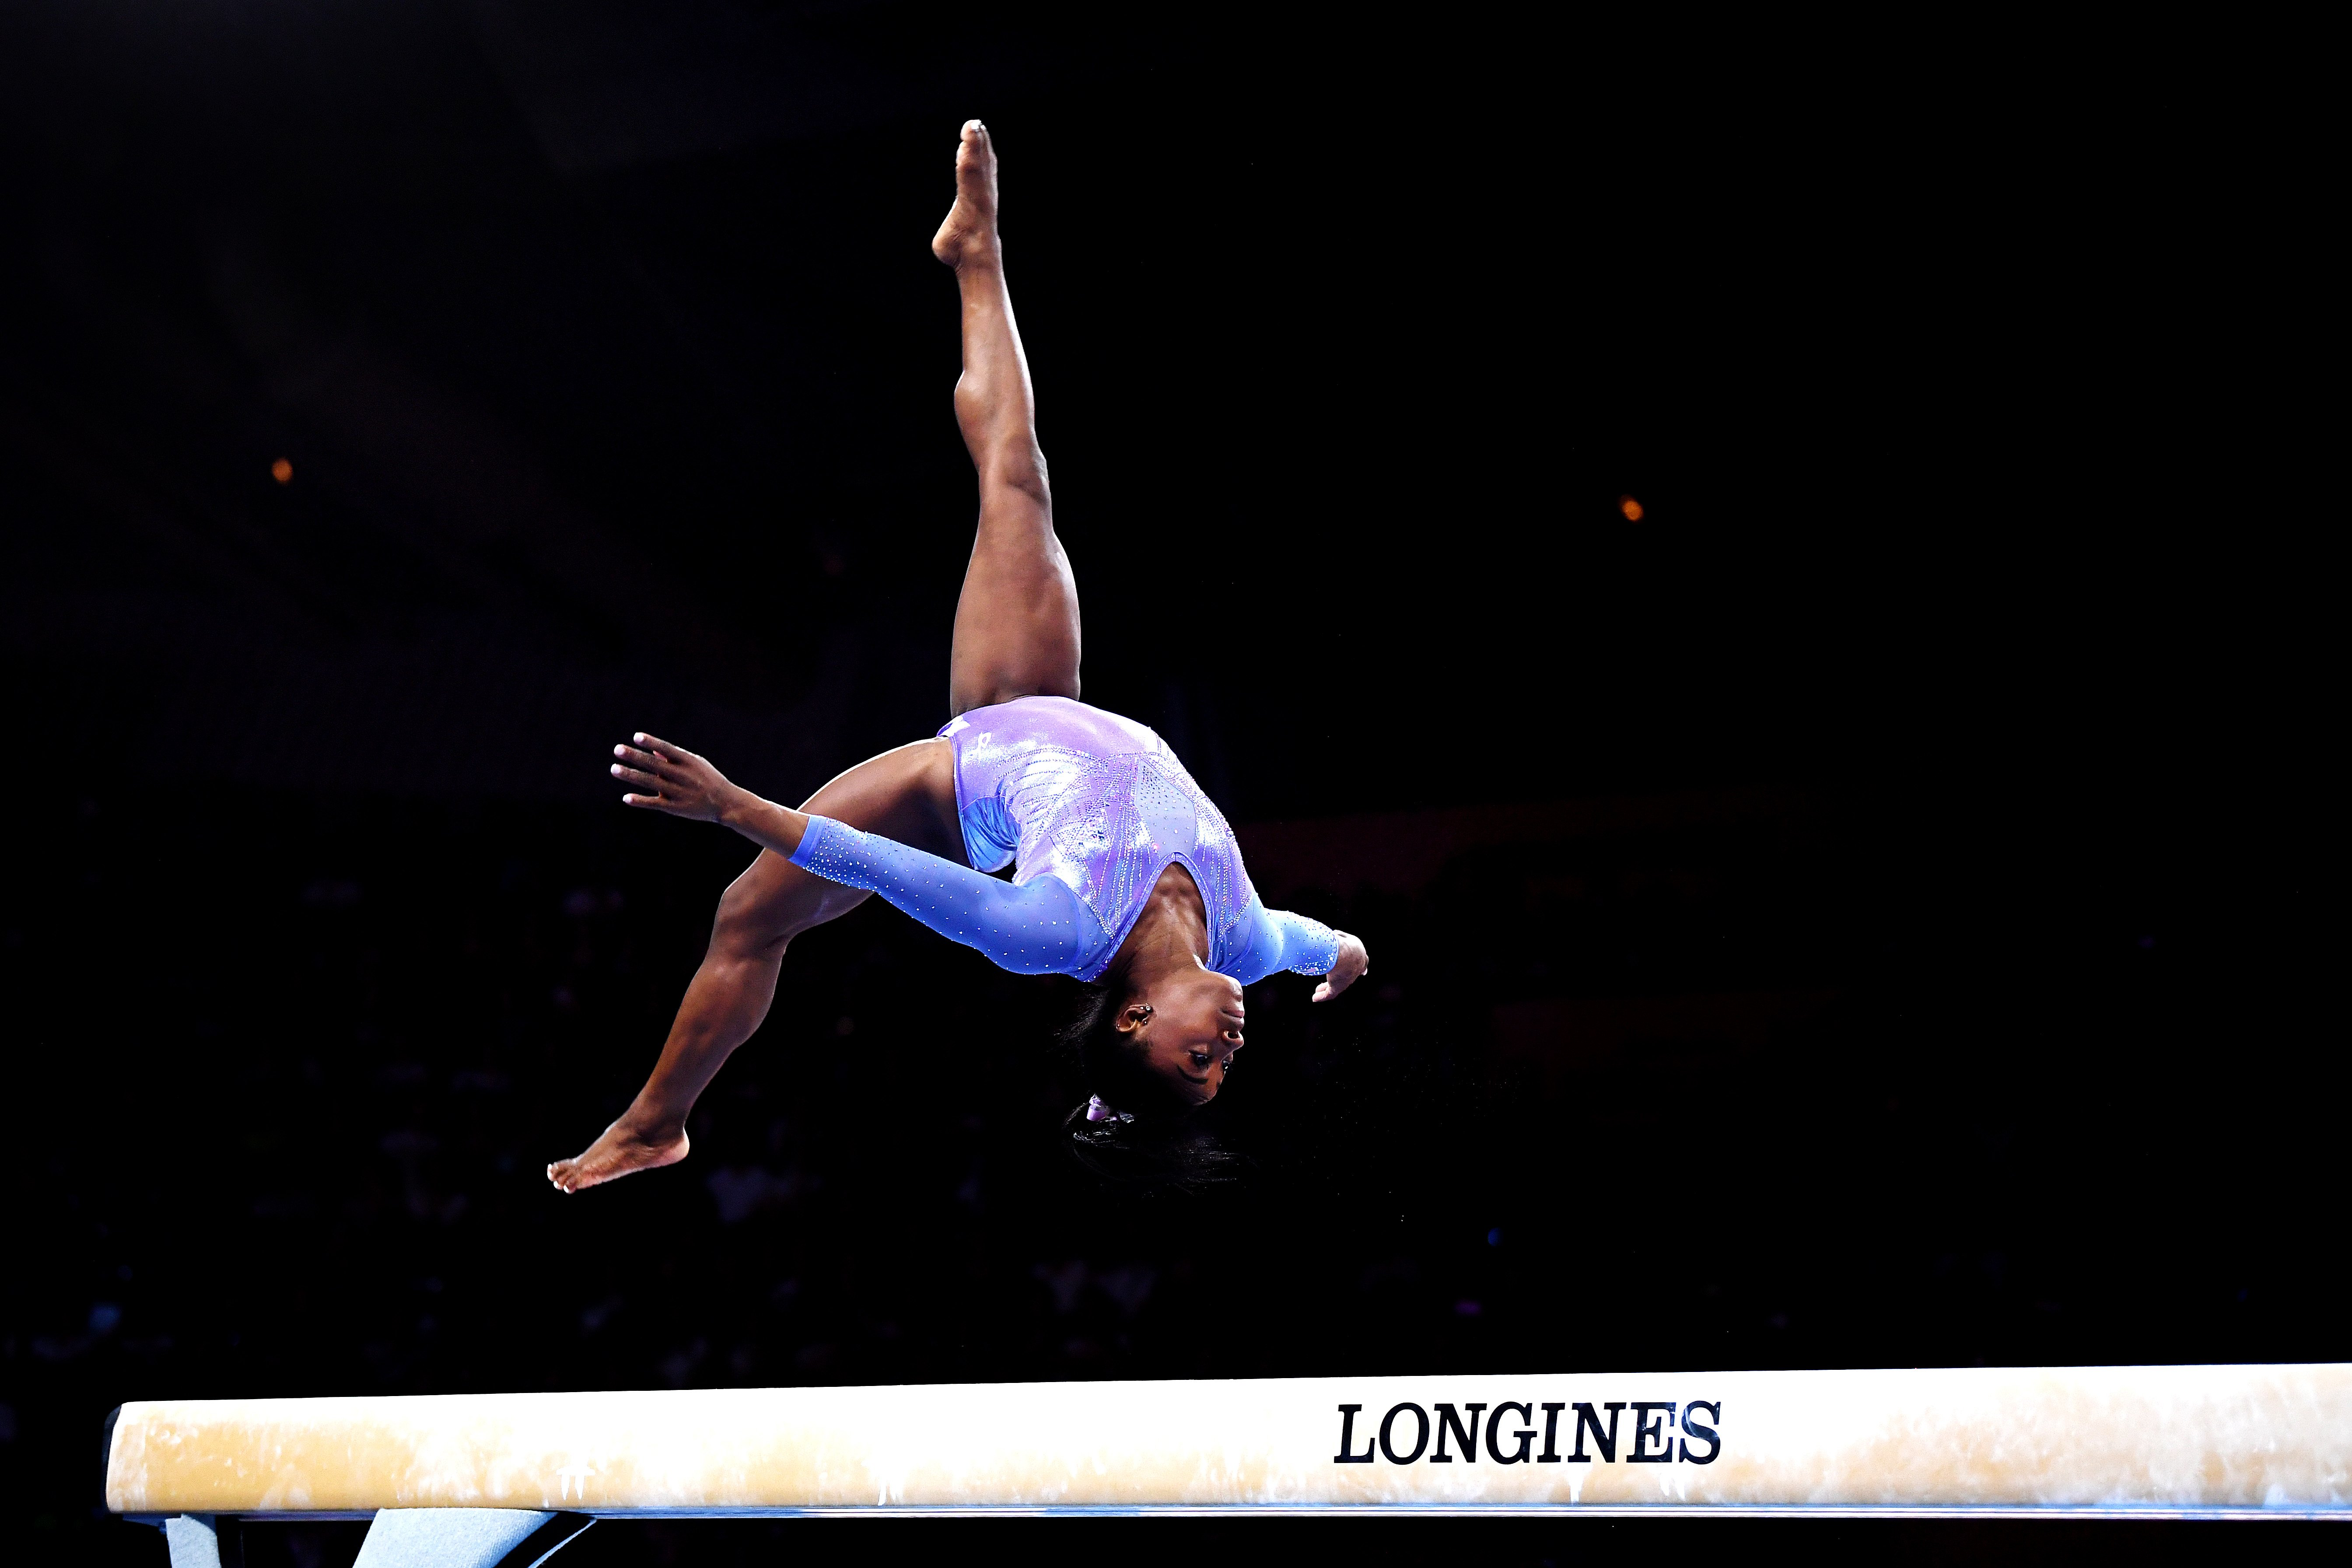 Simone Biles competes the the 49th FIG Artistic Gymnastics World Championships on October 13, 2019 in Stuttgart, Germany.   Source: Getty Images